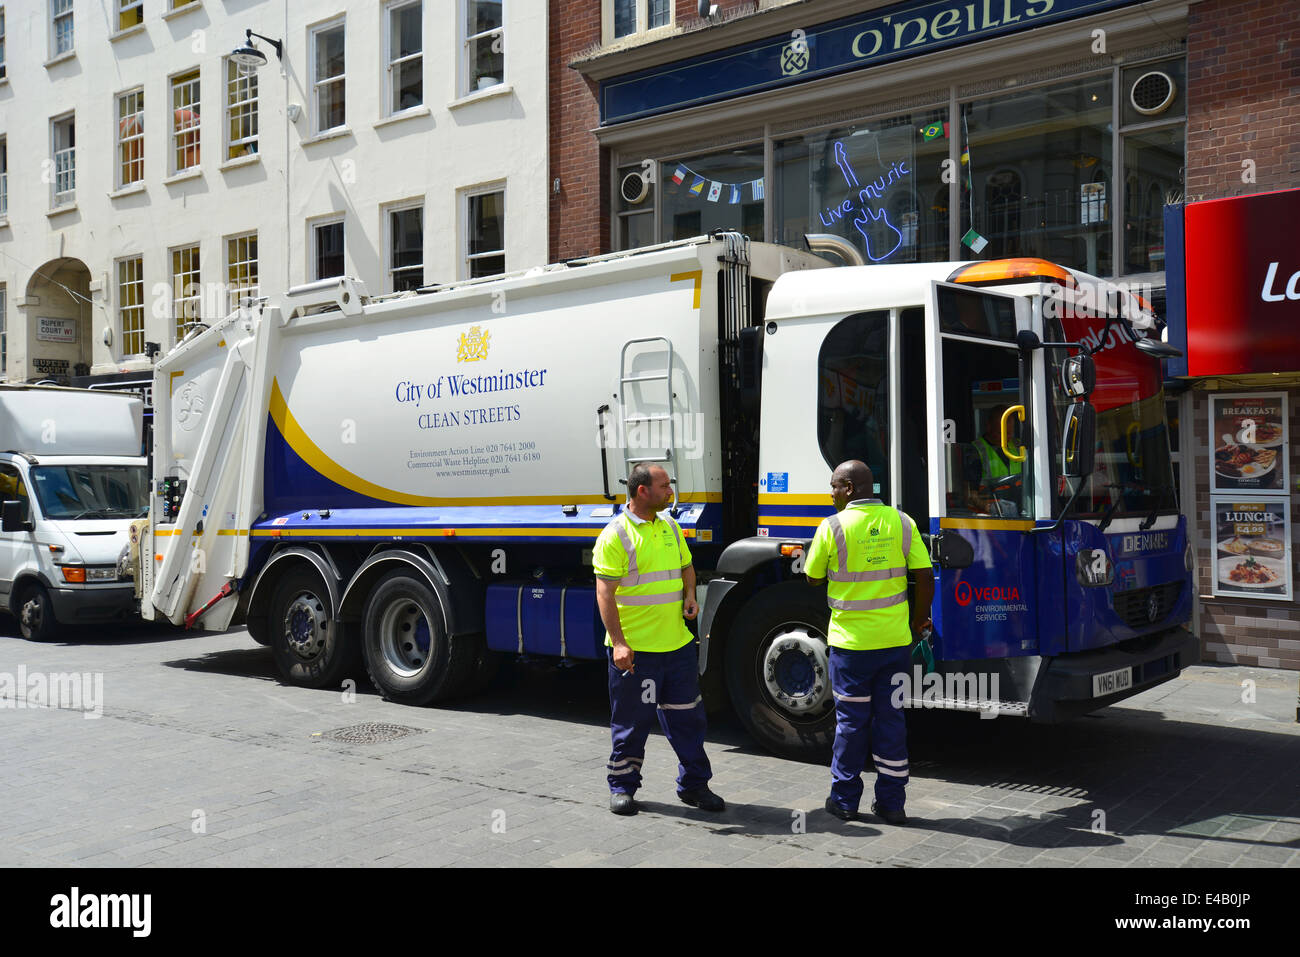 Rubbish truck collection in Wardour Street, Chinatown, West End, City of Westminster, London, England, United Kingdom - Stock Image